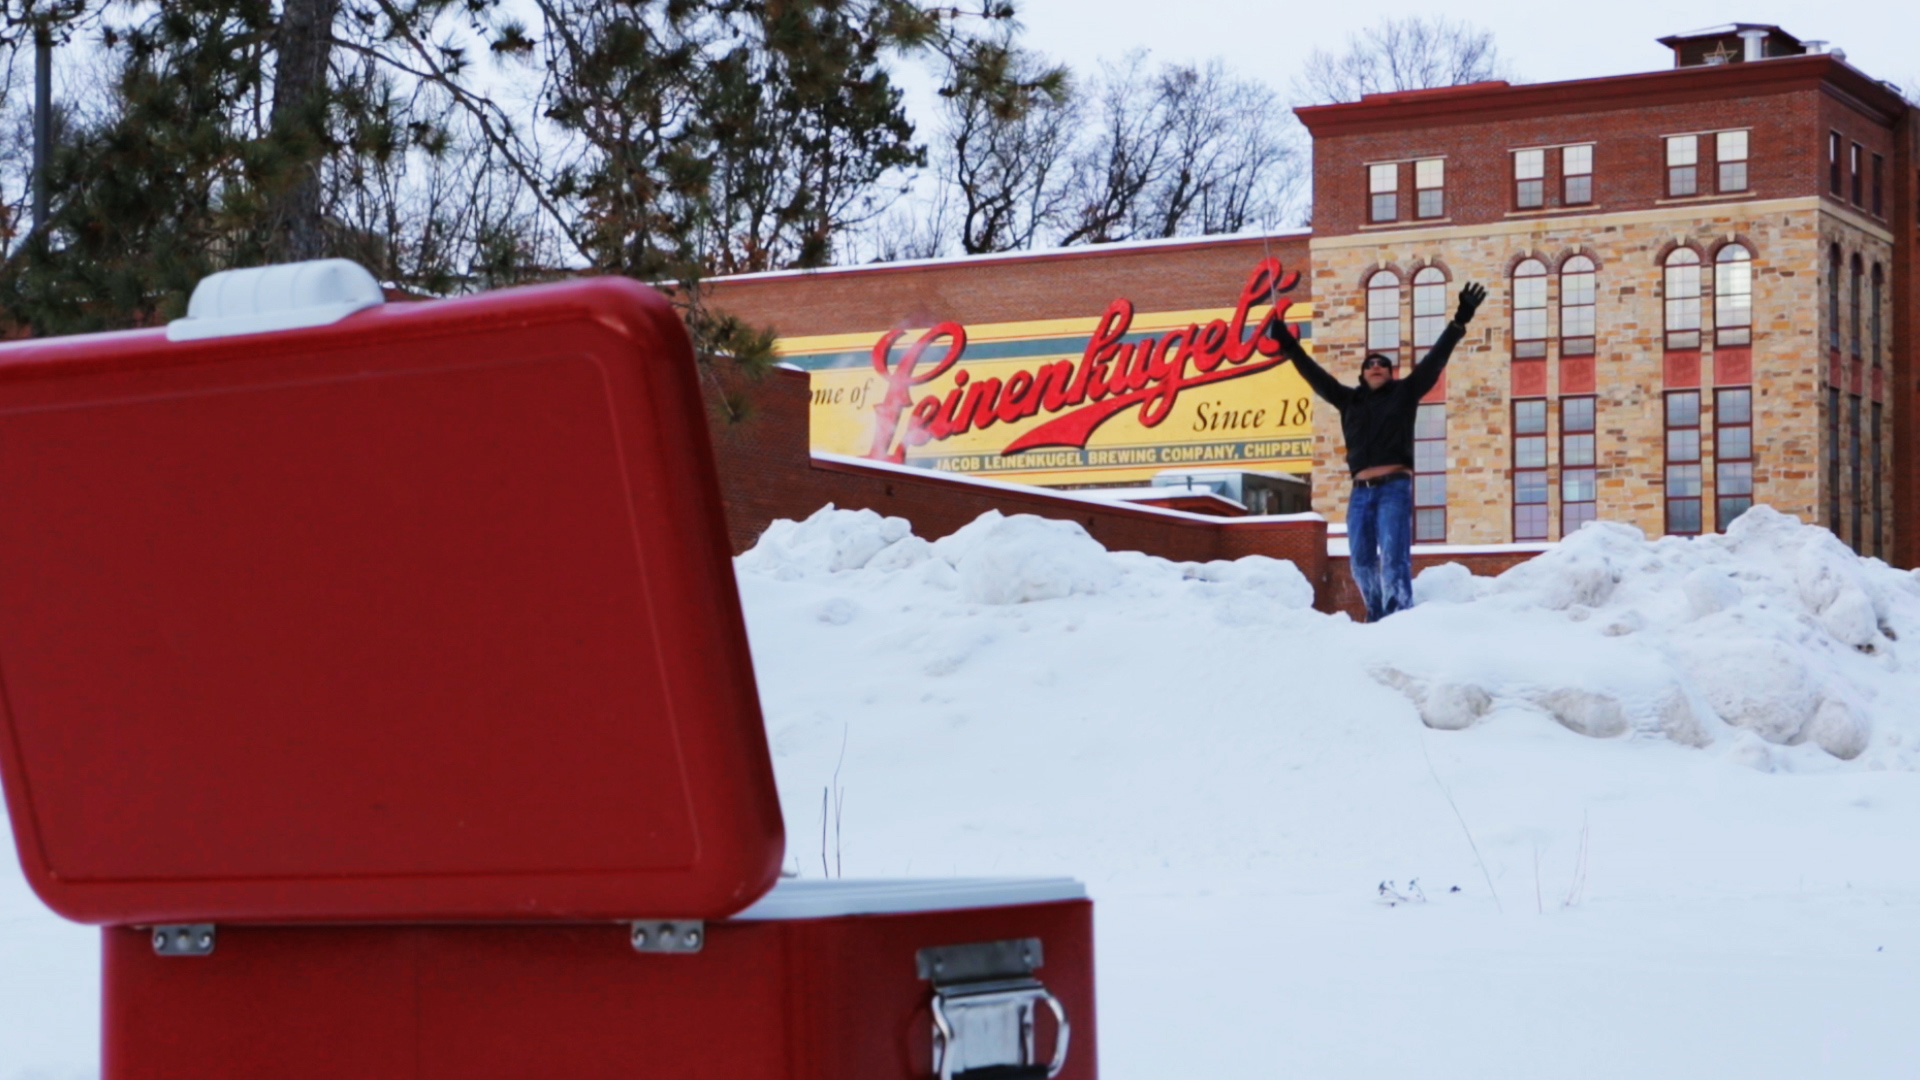 Leinenkugel's - Can't Wait for Summer